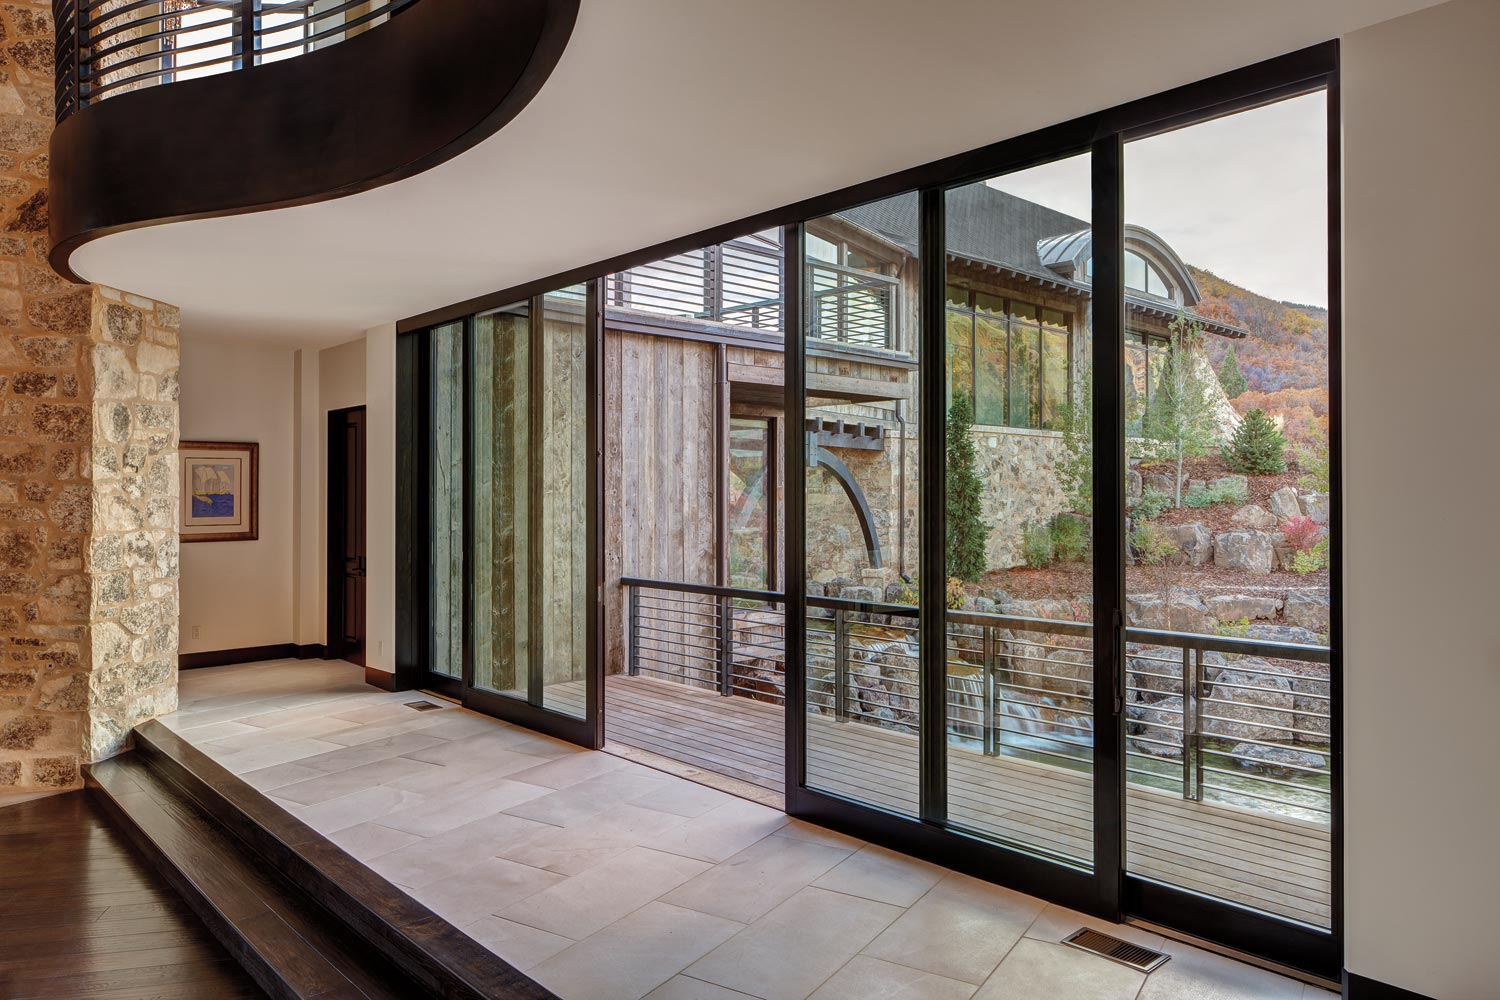 Marvin Ultimate Lift and Slide Doors 1 - What Are Lift and Slide Doors? And What Advantages Do You Gain with Them?